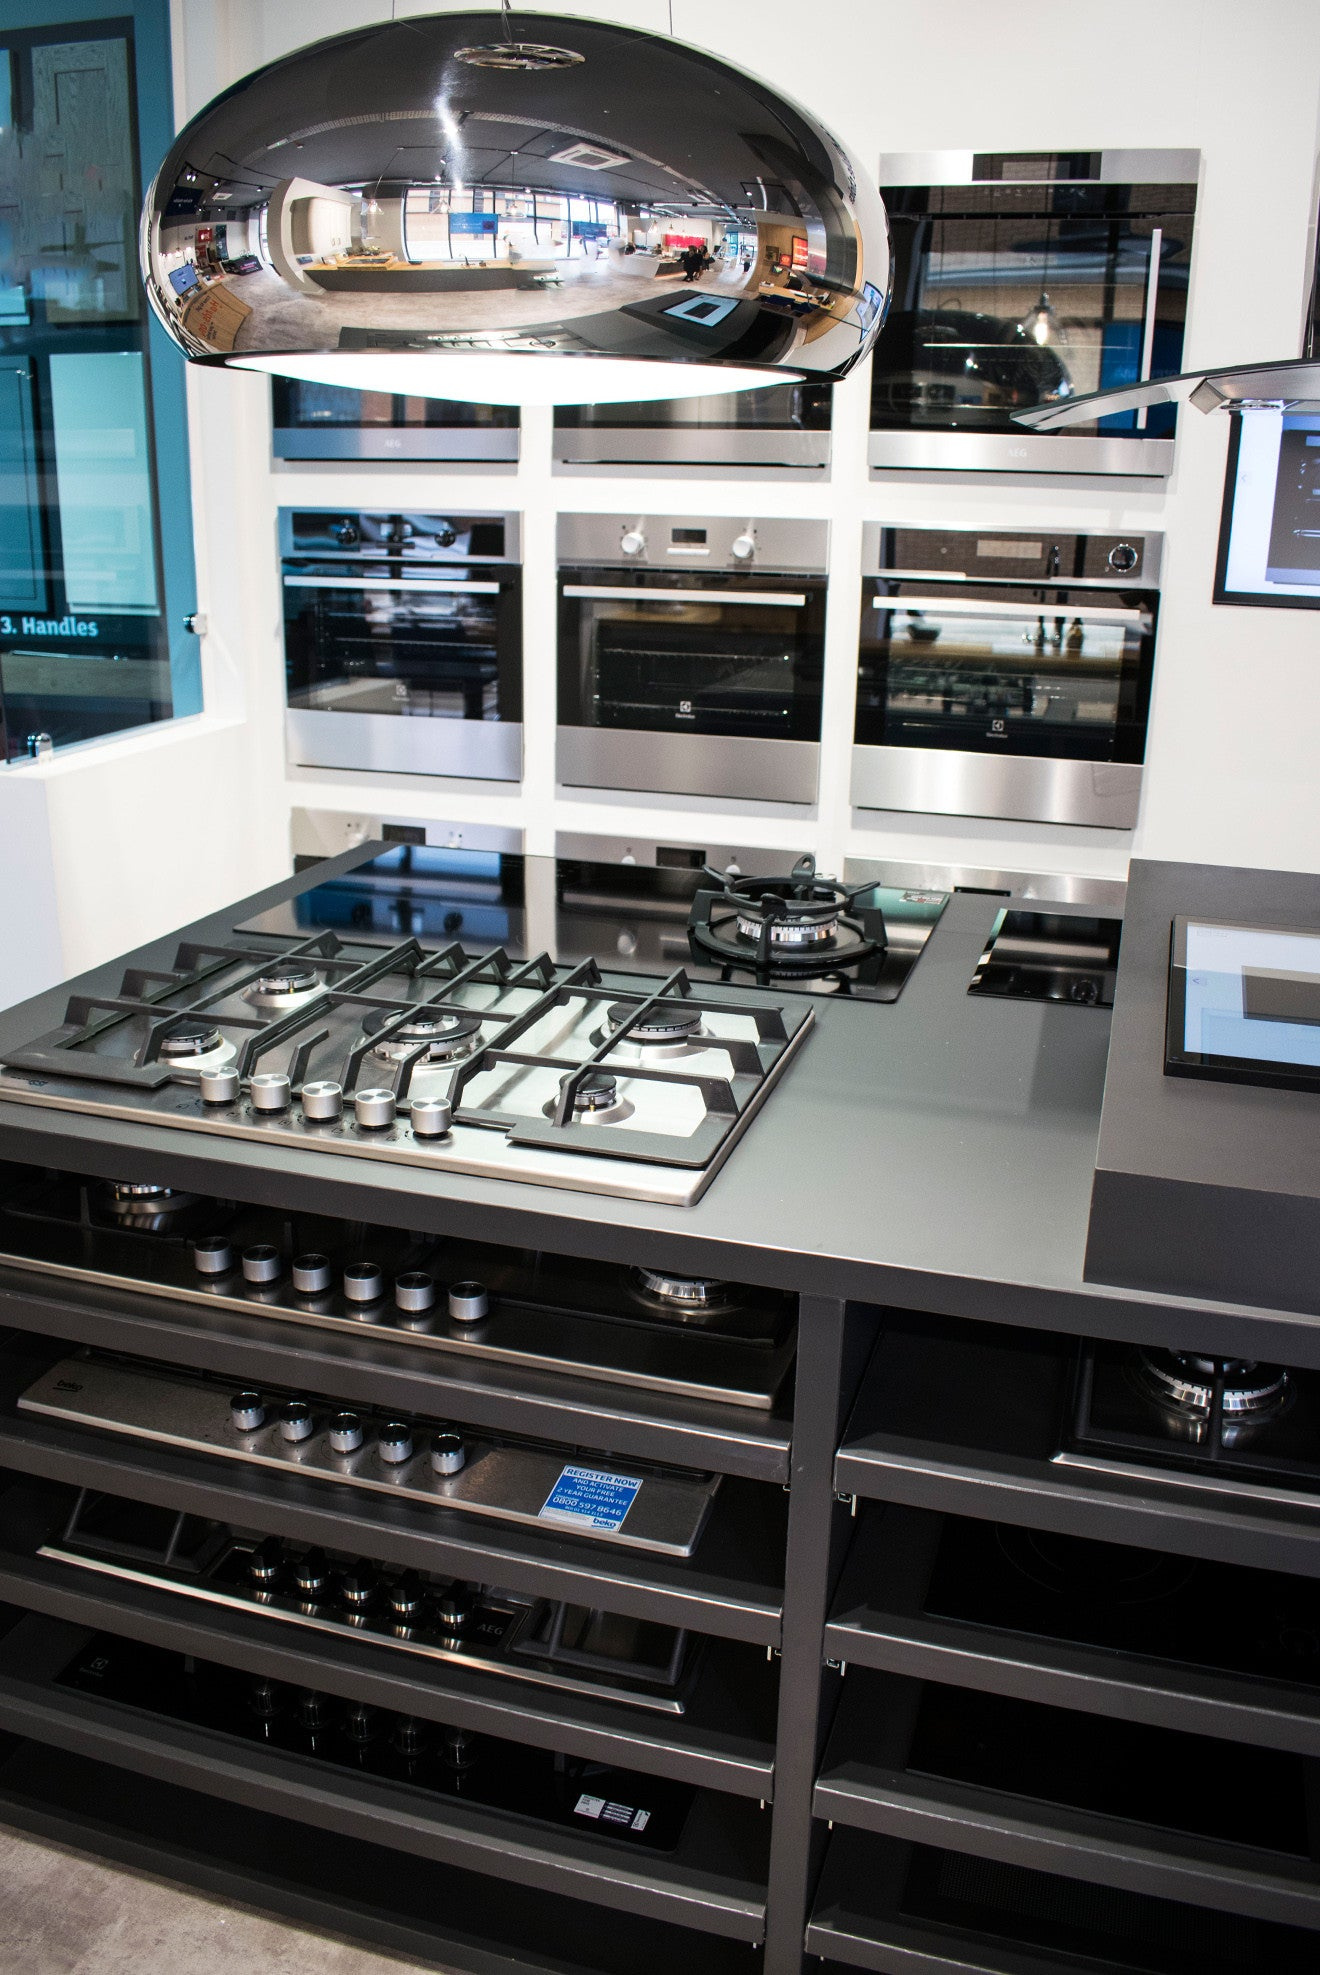 Magnet Kitchen appliance selection